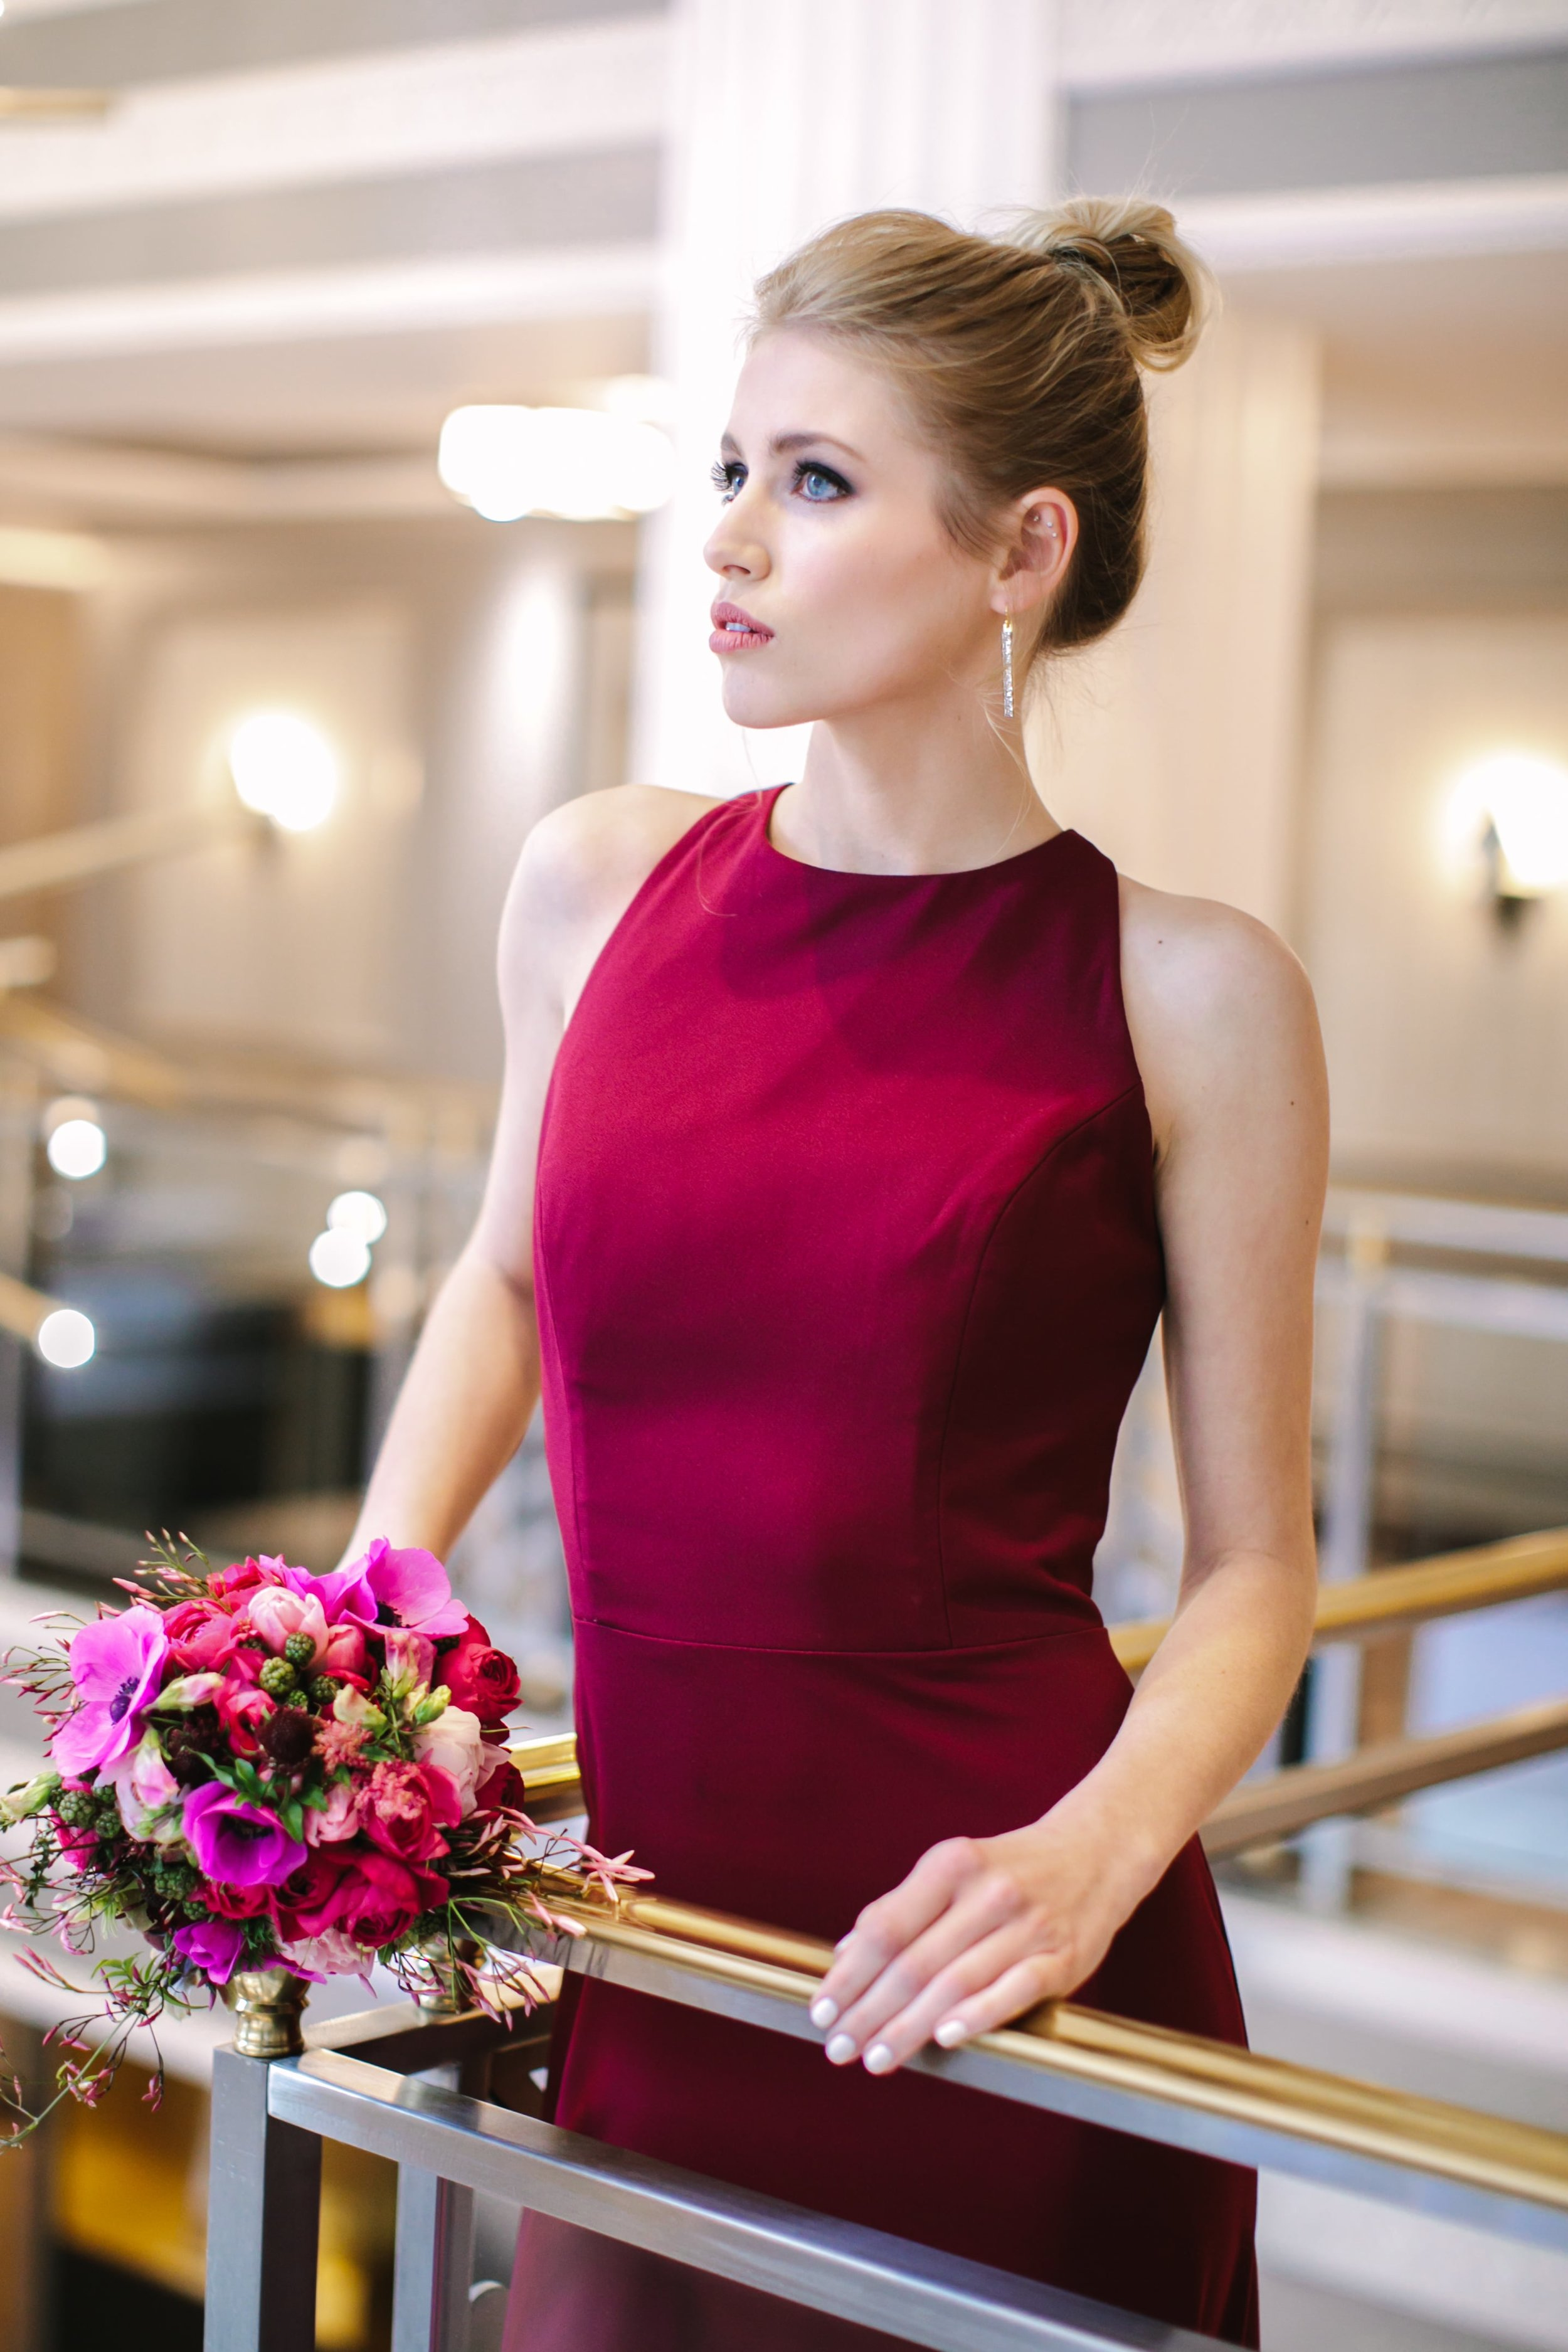 Styled Shoot photo featuring Hayley Paige Occasions style 5816 in Burgundy